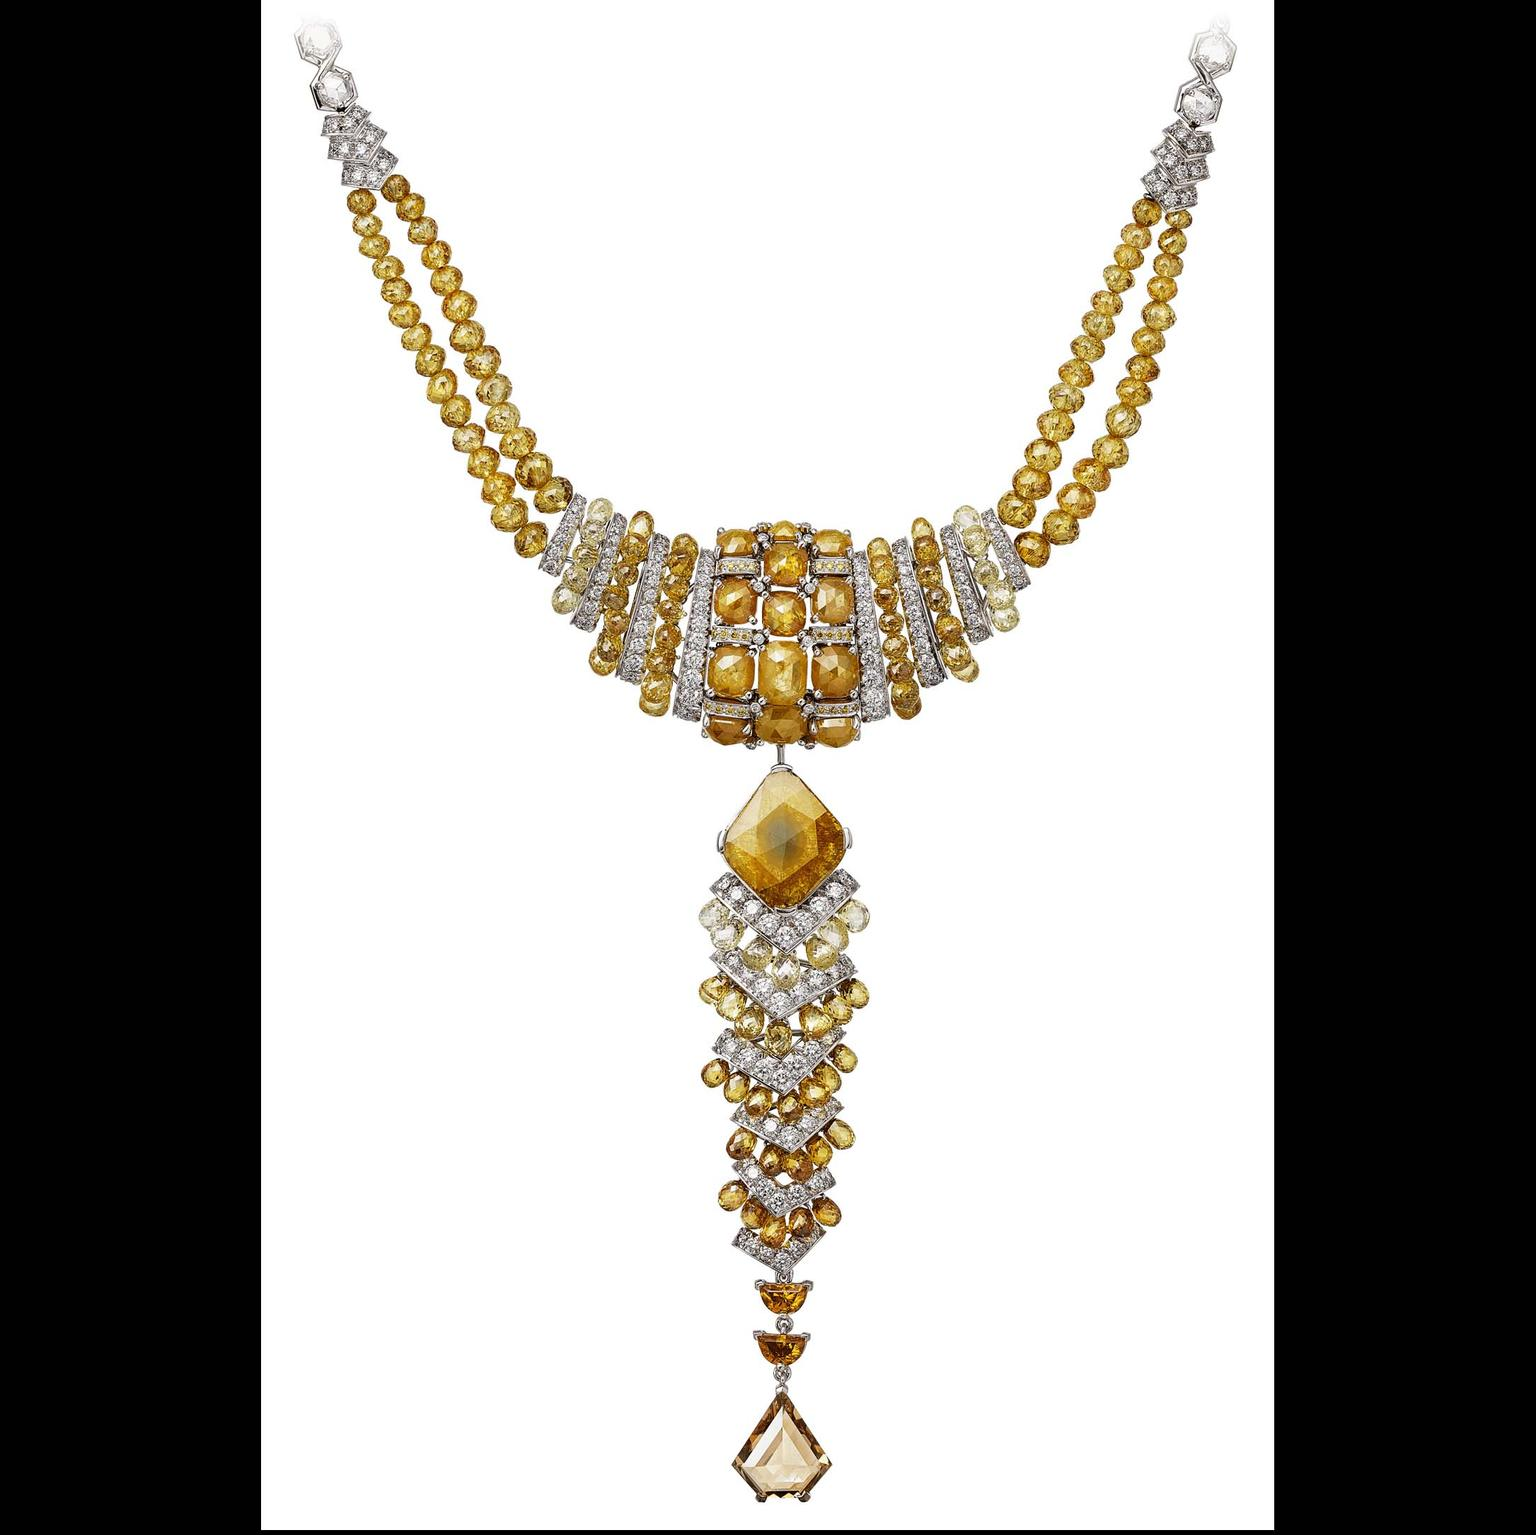 Cartier Magnitude Yuma necklace with yellow diamonds